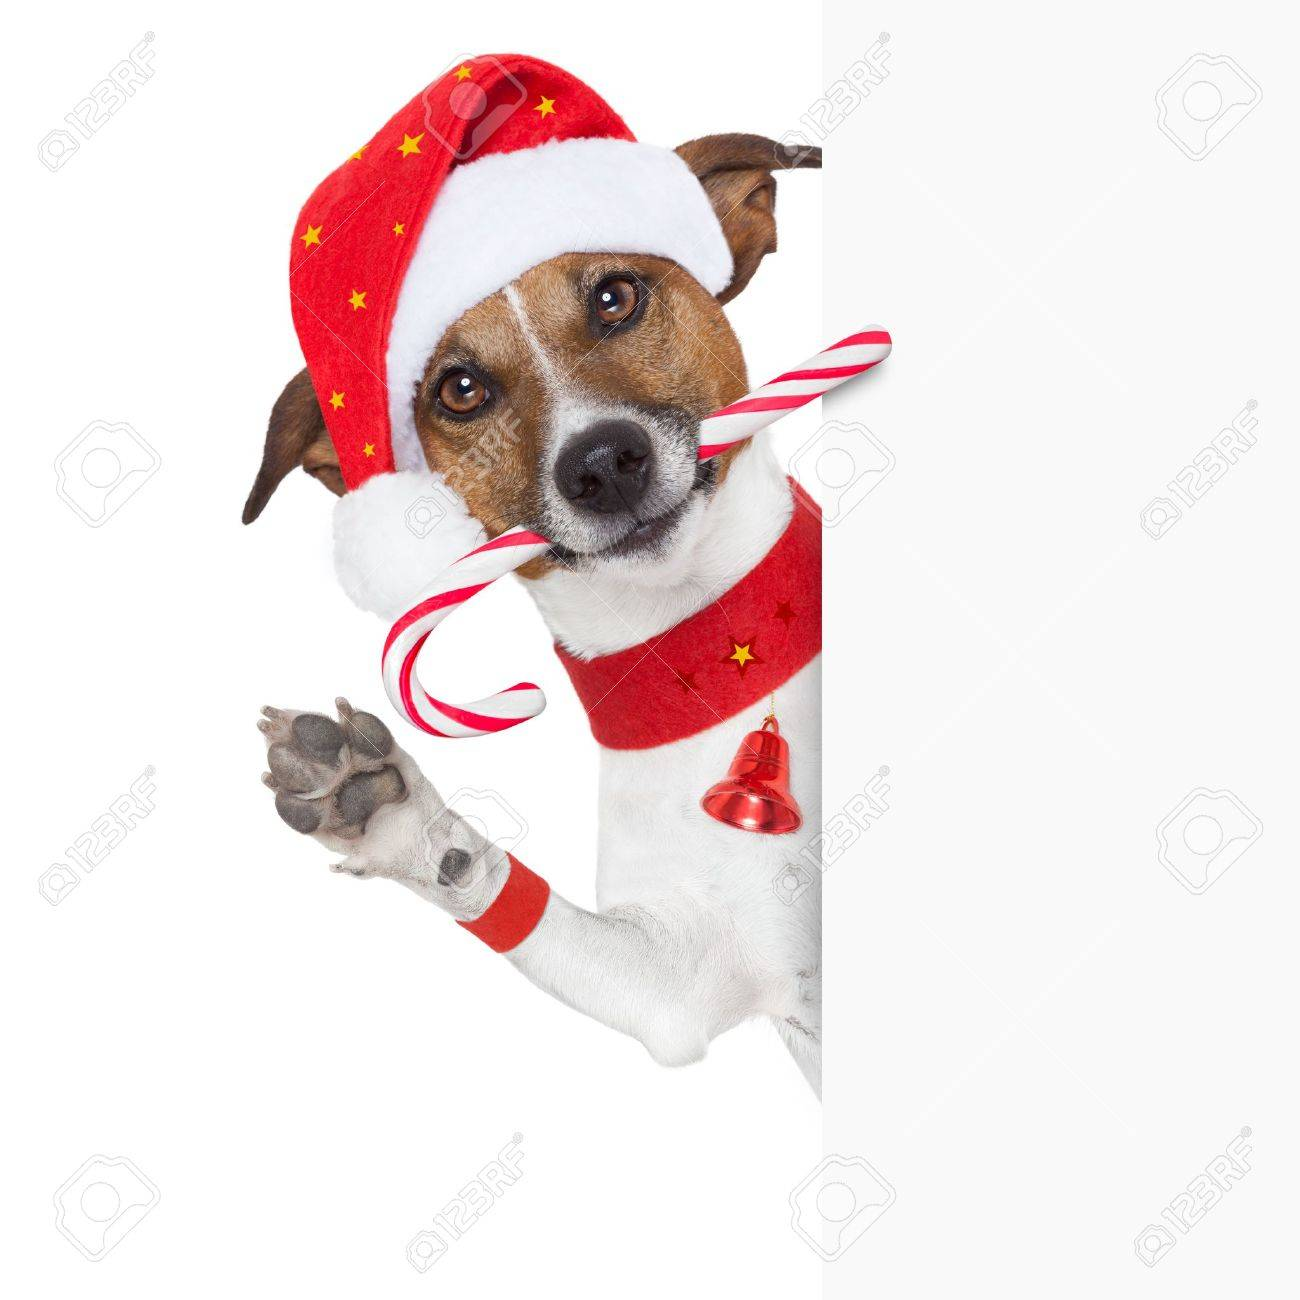 Christmas Dog As Santa Behind Placard With Sugar Candy Cane Stock Photo    21377312